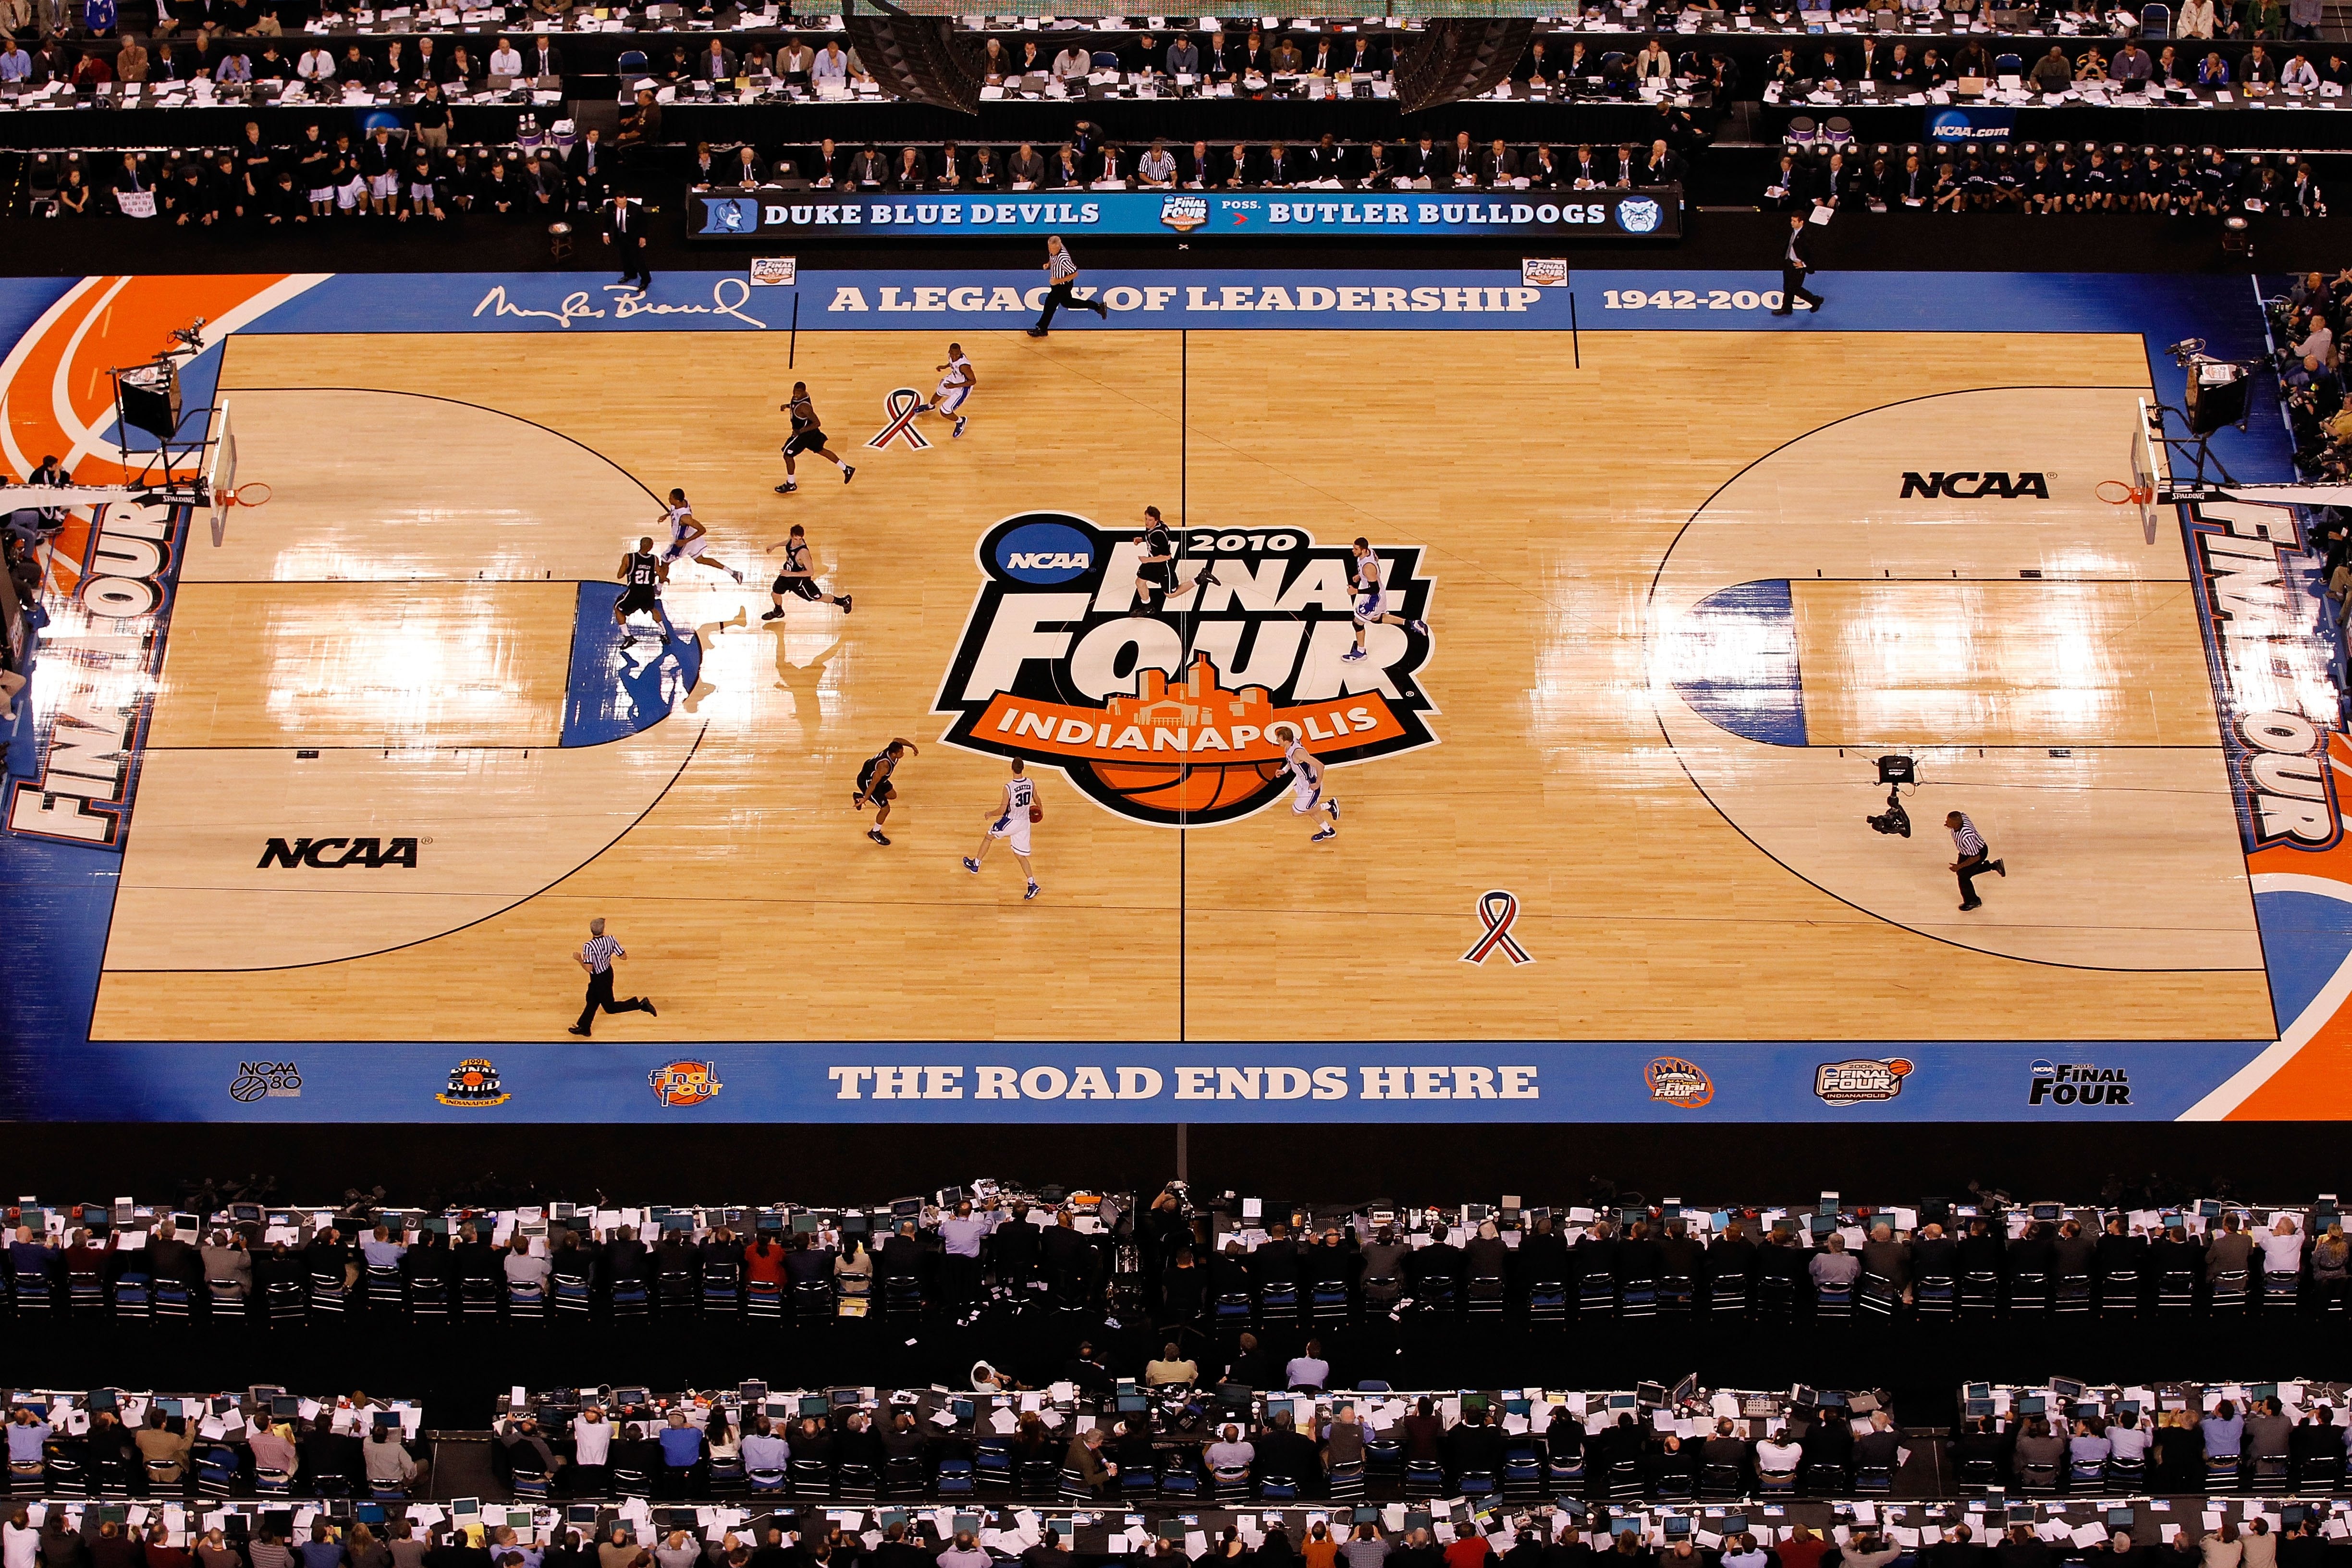 INDIANAPOLIS - APRIL 05:  A general view of the Butler Bulldogs playing against the Duke Blue Devils during the 2010 NCAA Division I Men's Basketball National Championship game at Lucas Oil Stadium on April 5, 2010 in Indianapolis, Indiana.  (Photo by Kev